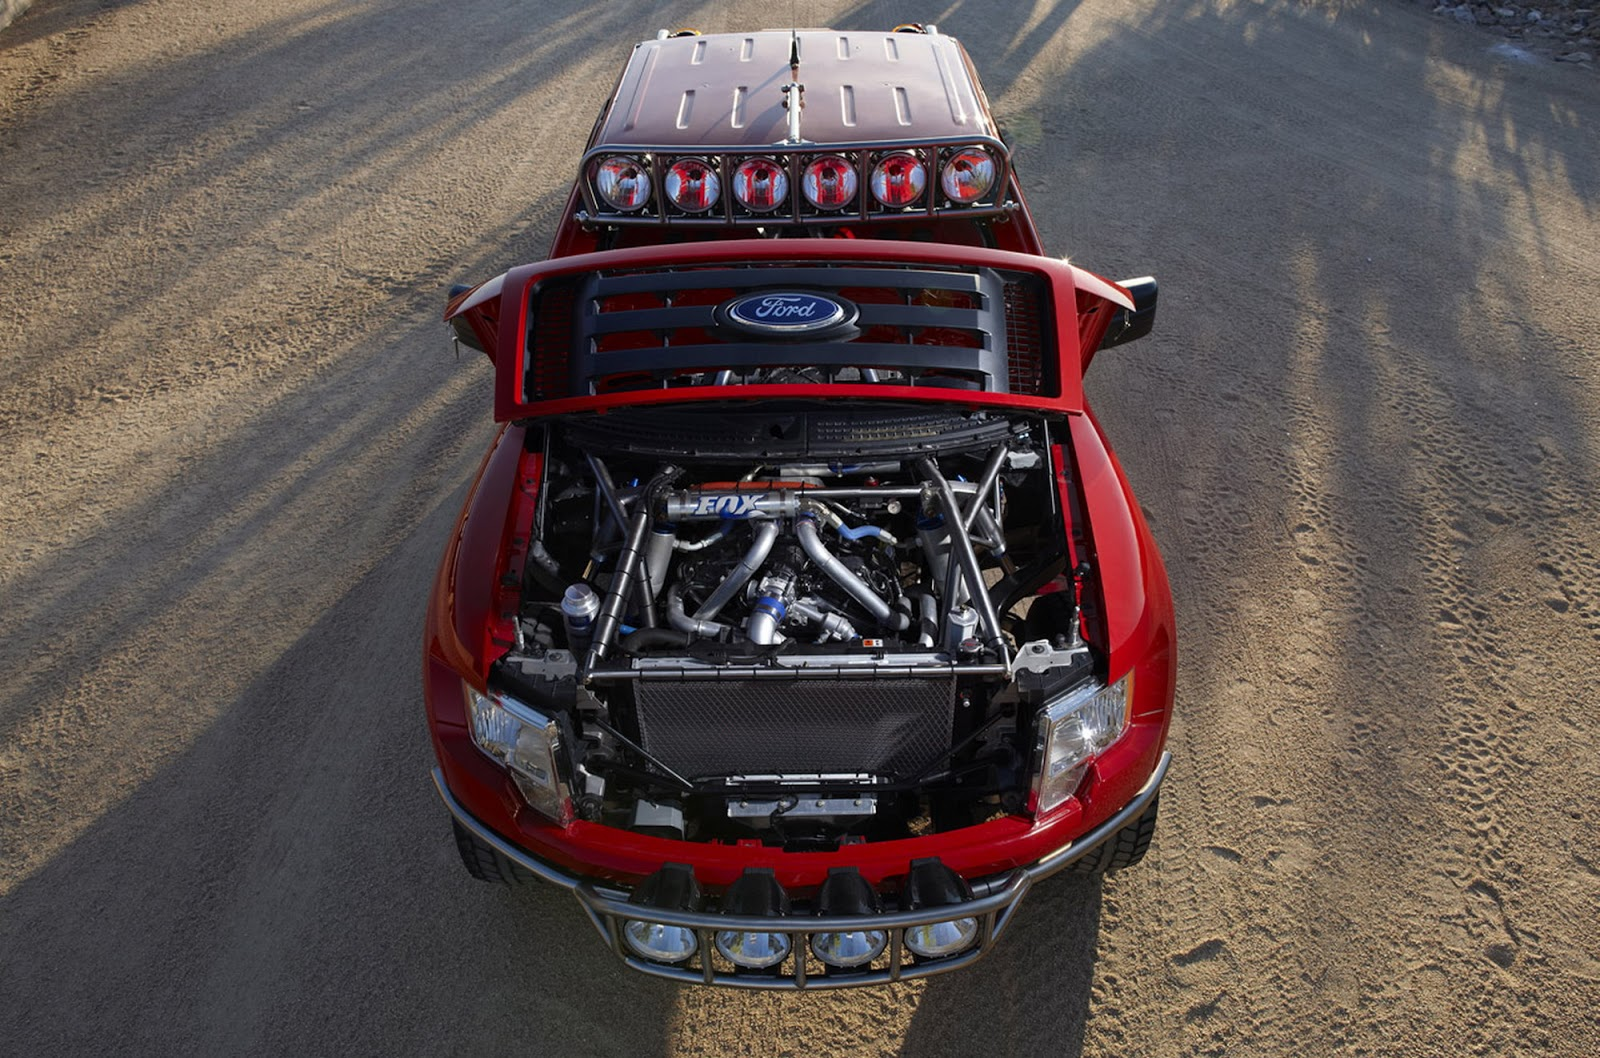 hight resolution of ford s f150 ecoboost engine under federal investigation